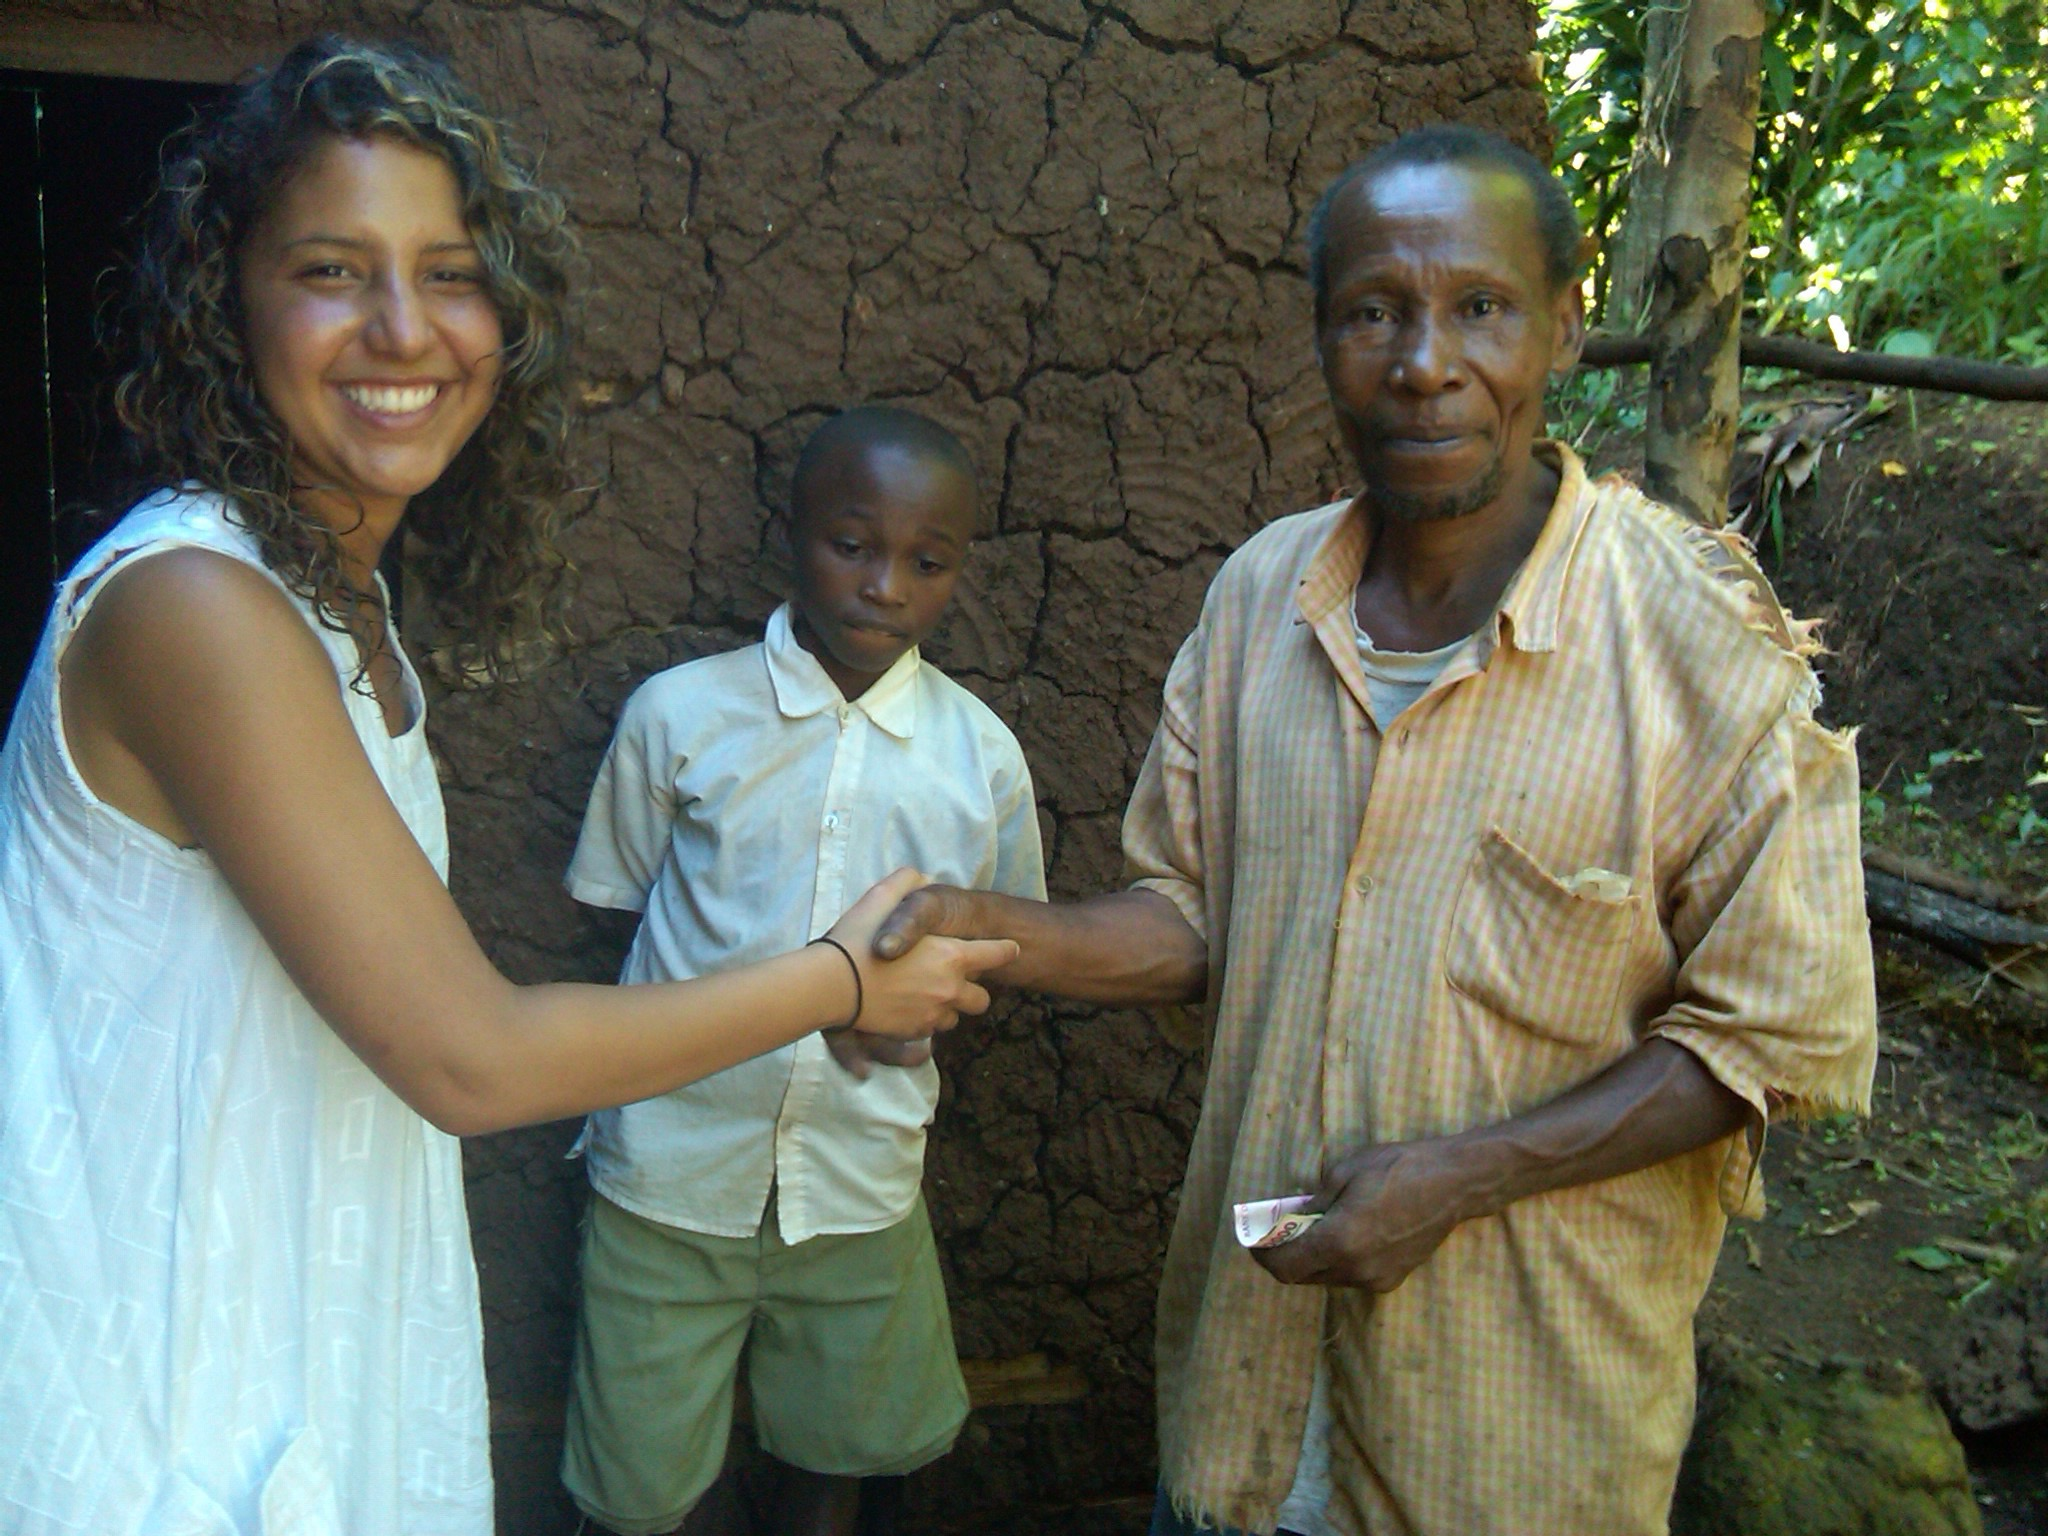 Meeting the father of a student at his home